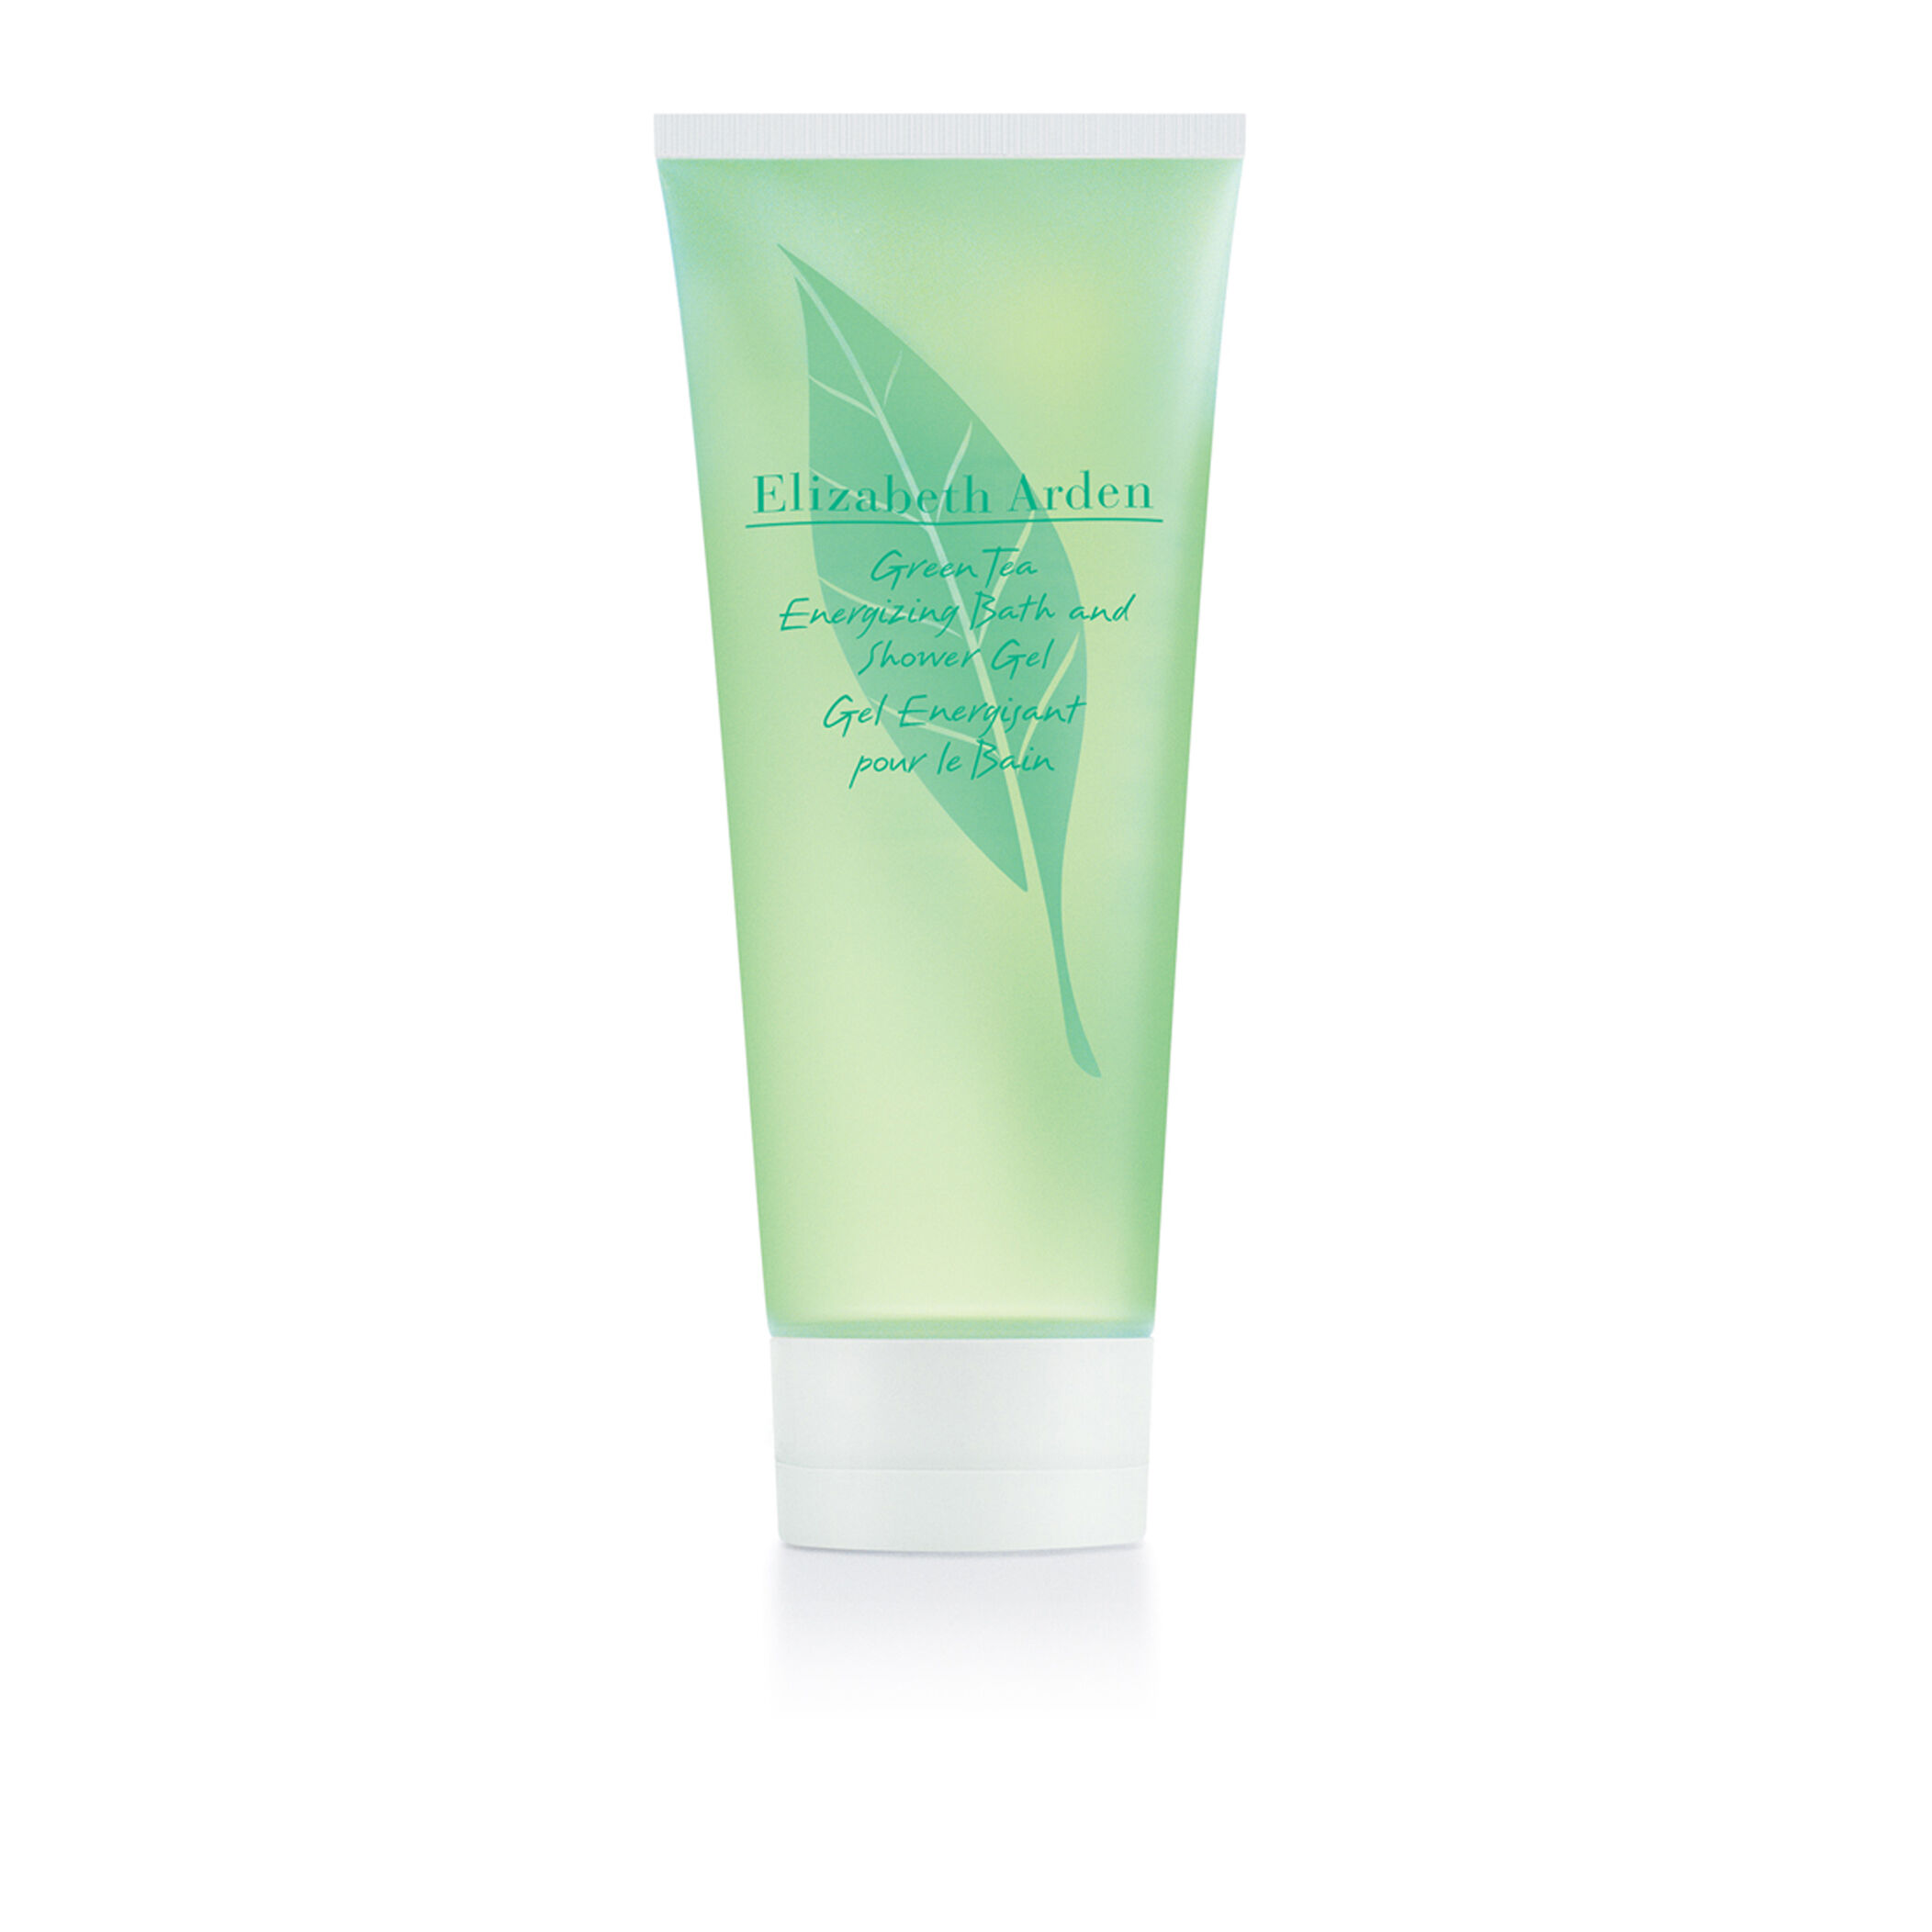 Green Tea Energizing Bath and Shower Gel